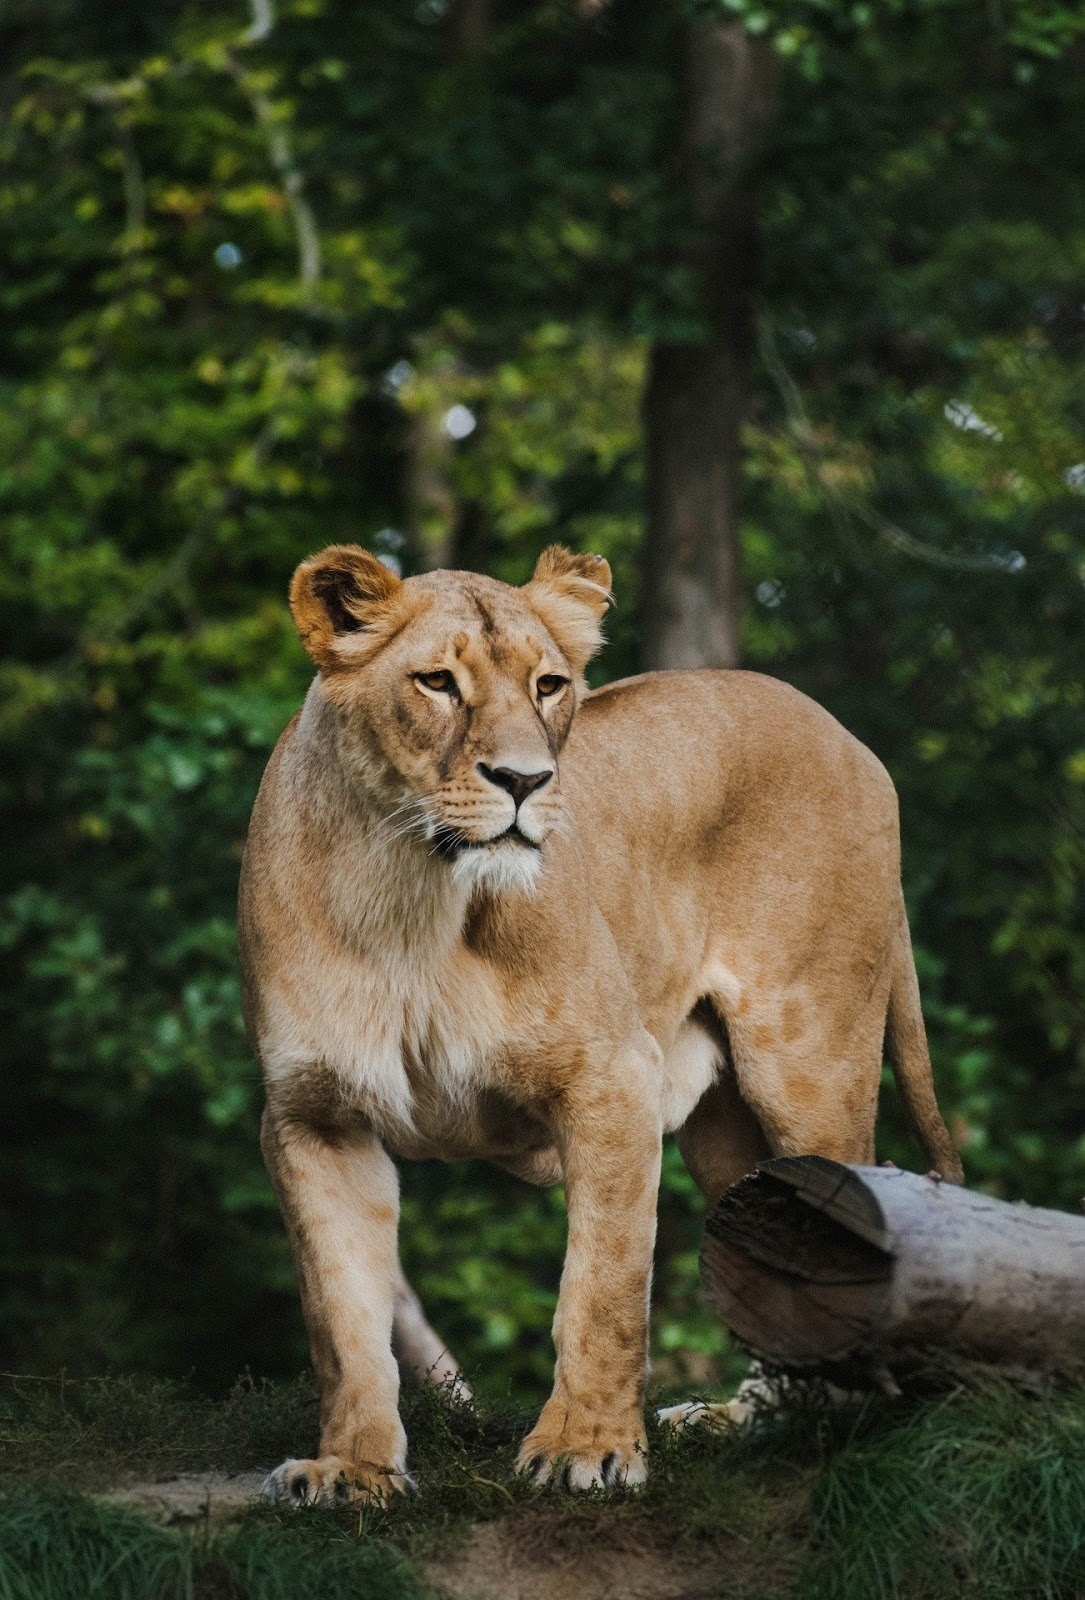 The lioness walking beside the tree,lion images